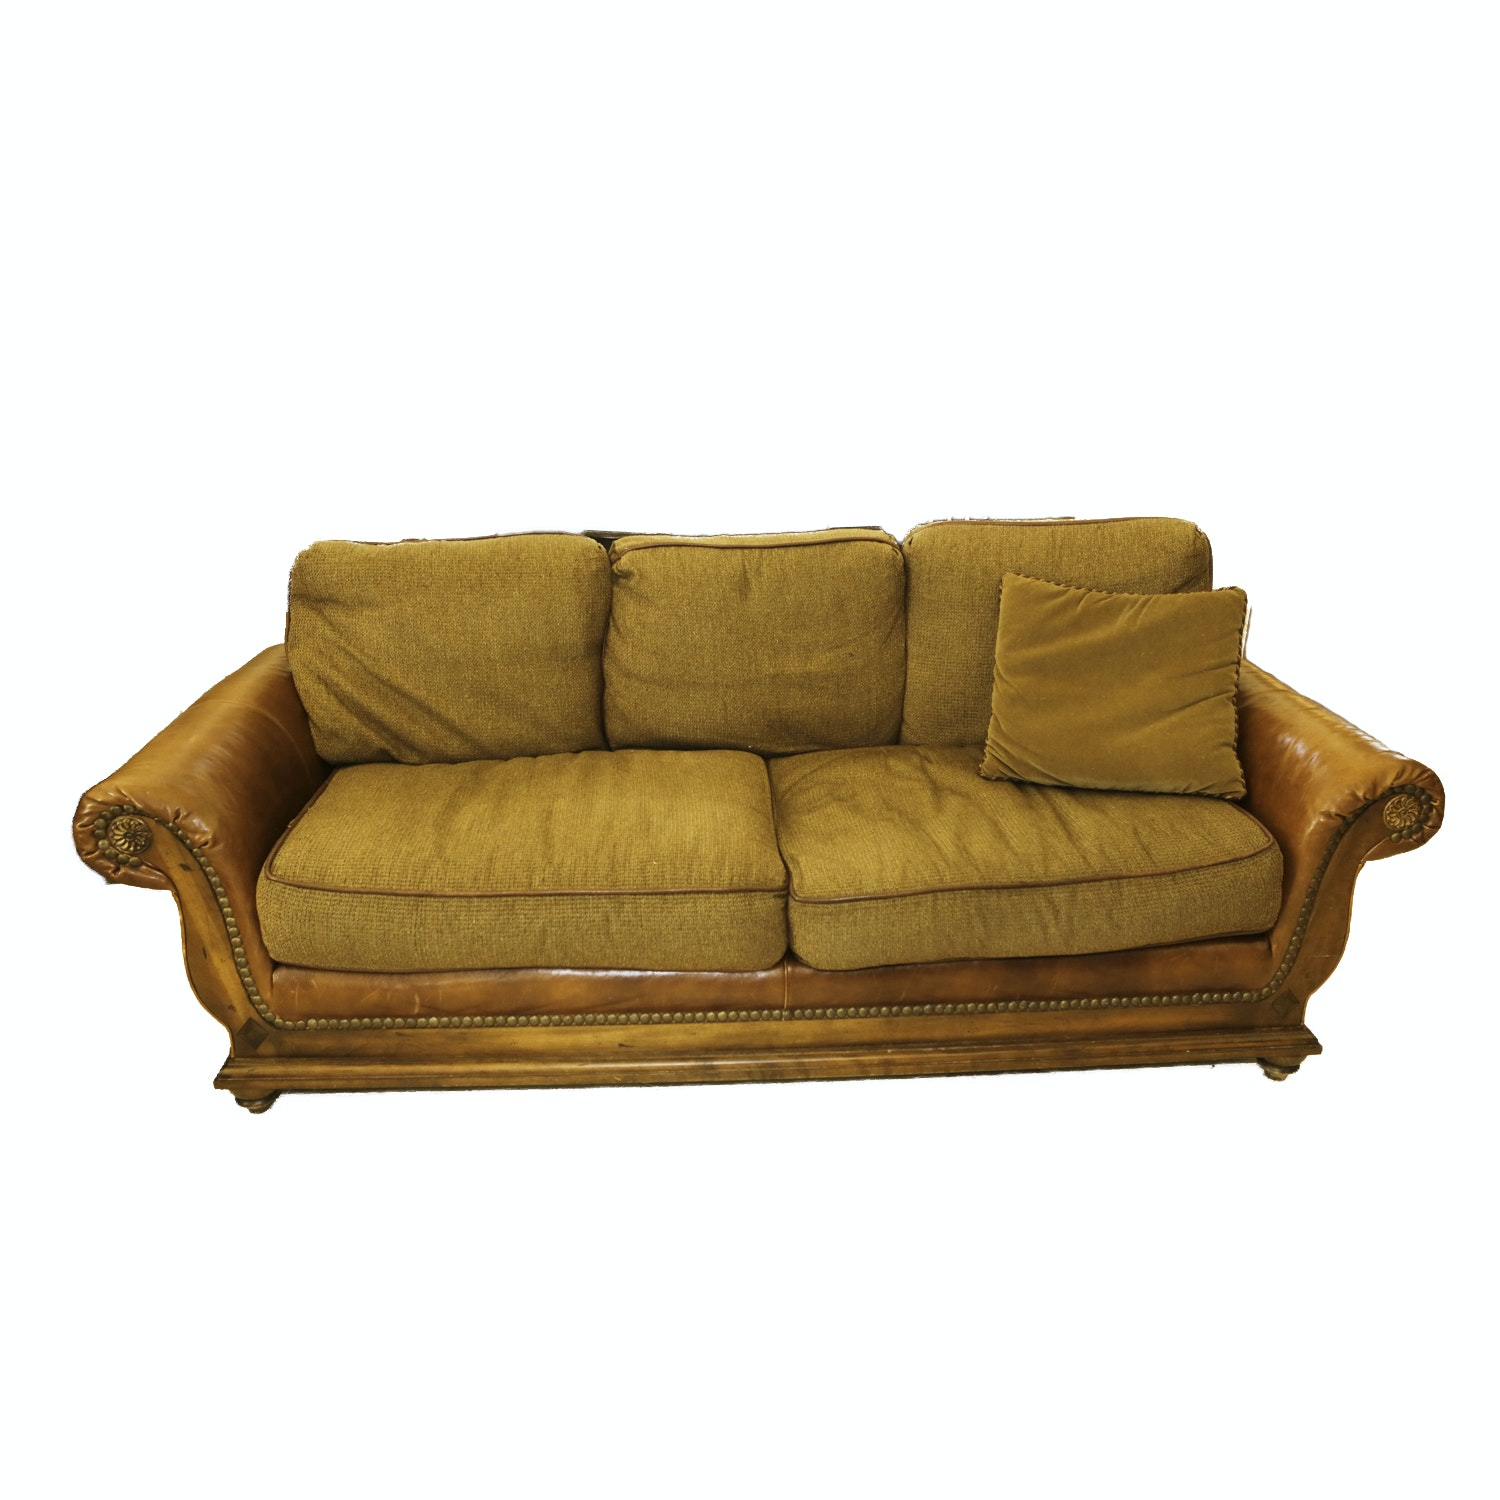 Upholstered Leather And Wood Sofa By Harden ...